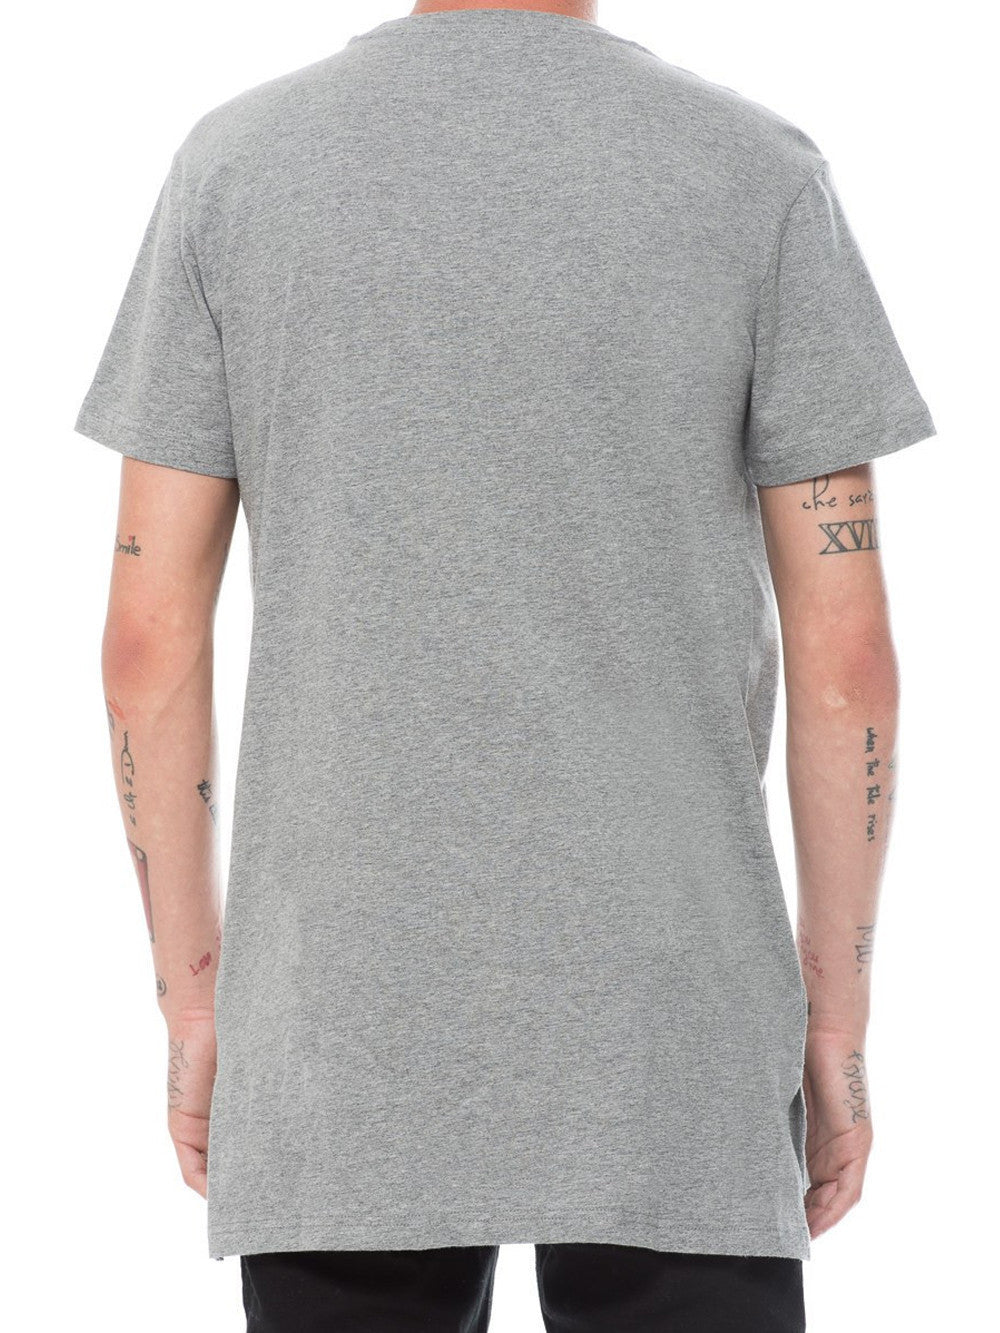 Young and Reckless Mens - Tees - Basic Tee Basic Long Tee - Heather Grey